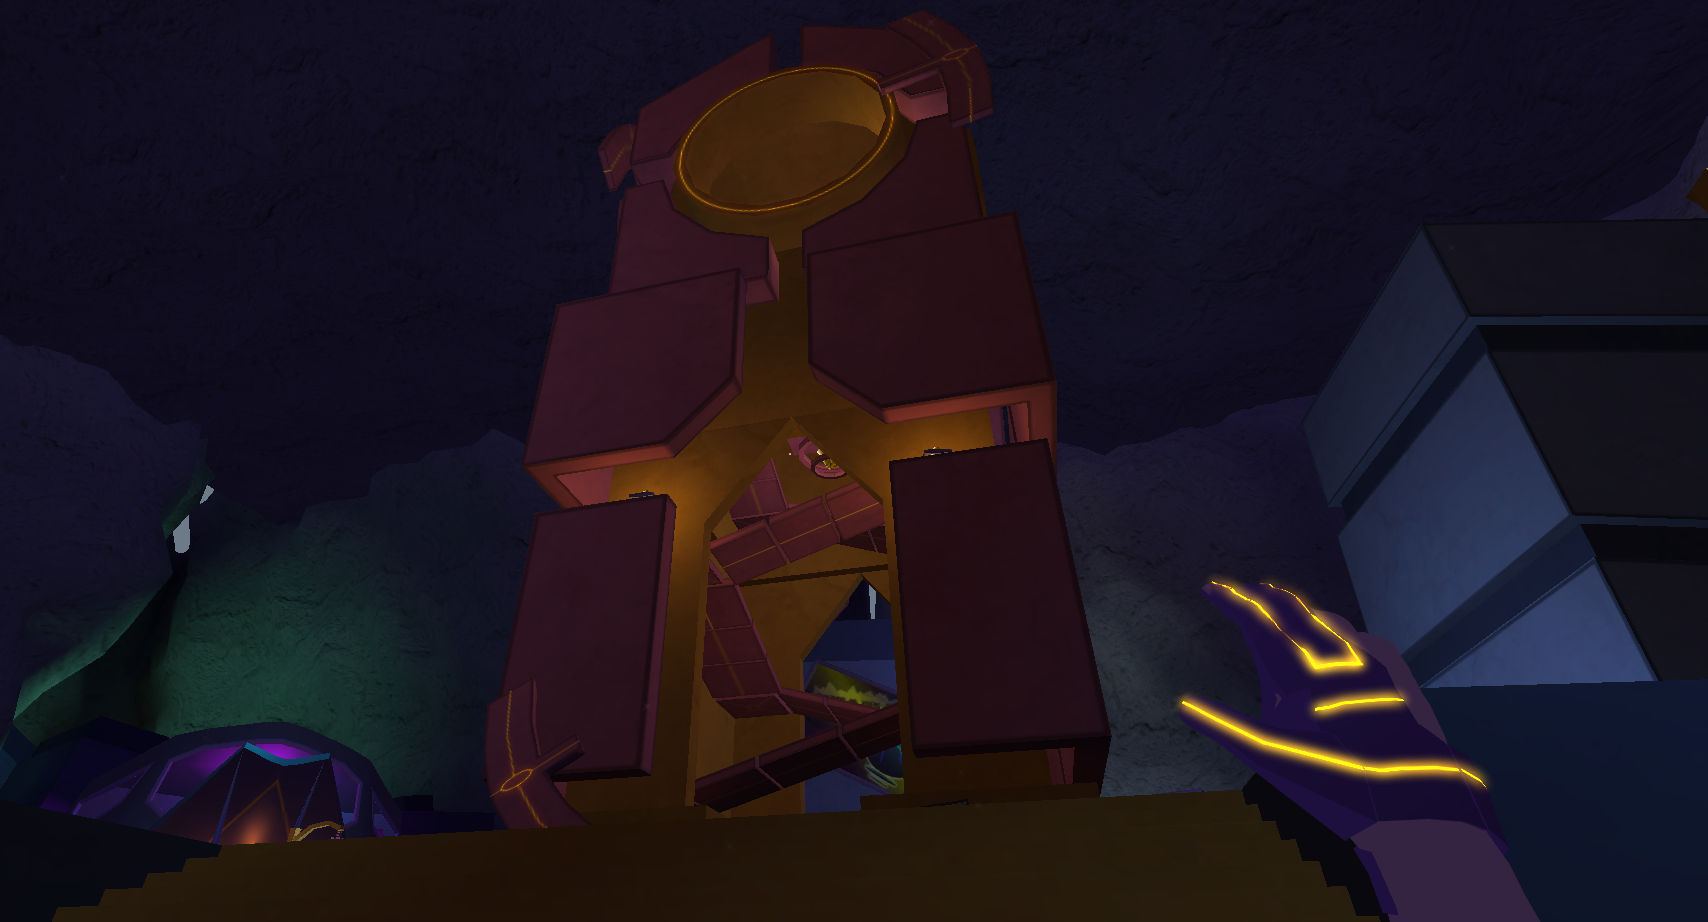 In-game screenshot: The clock tower, a central point for players to orient themselves